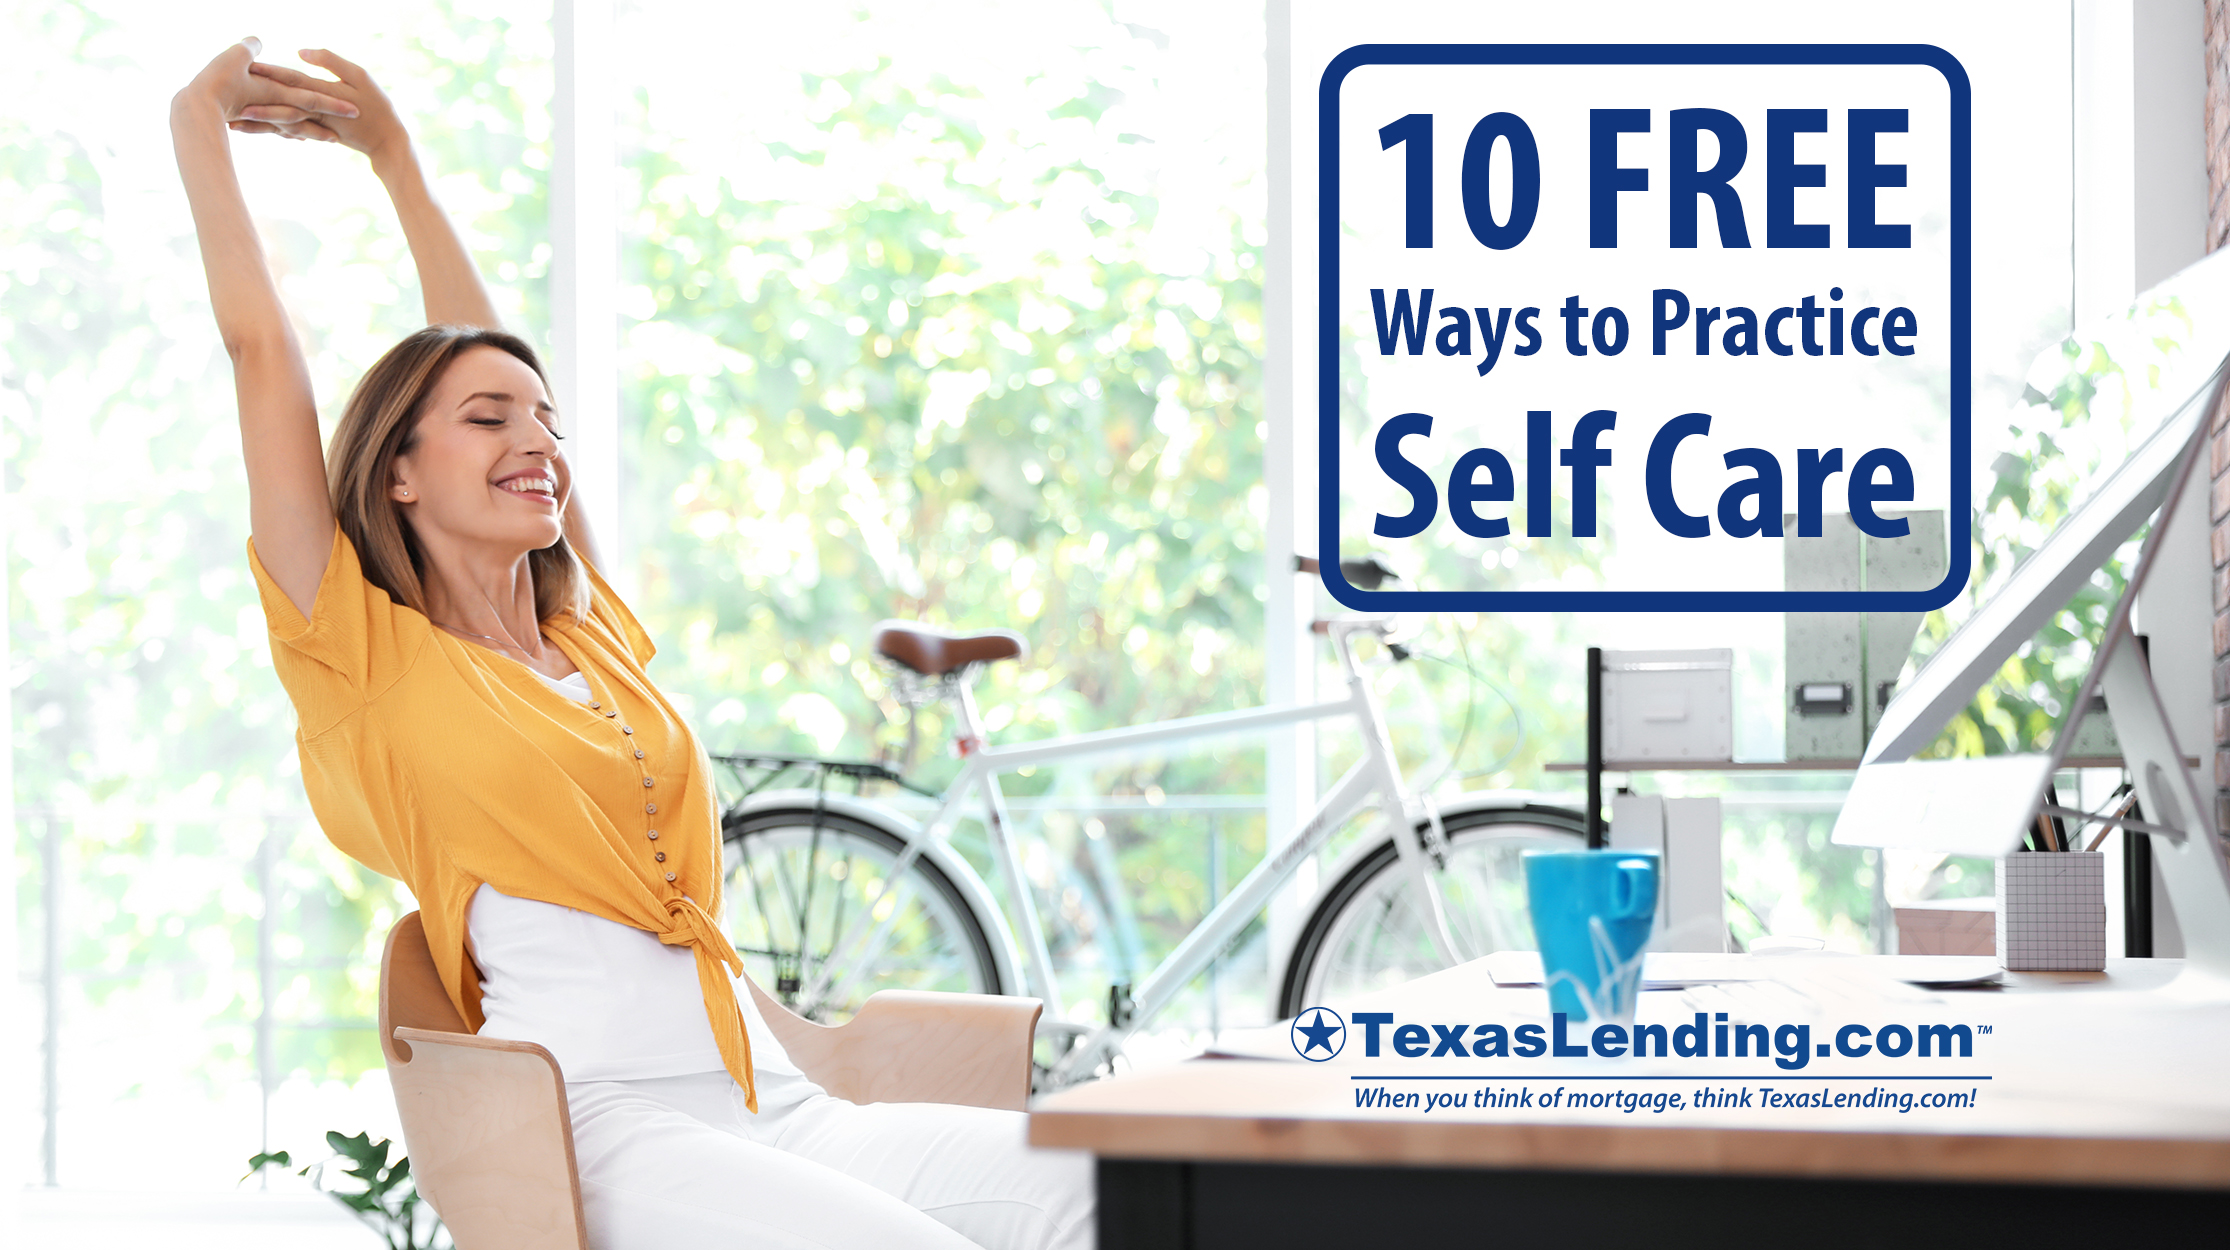 Free ways to practice self care during the day